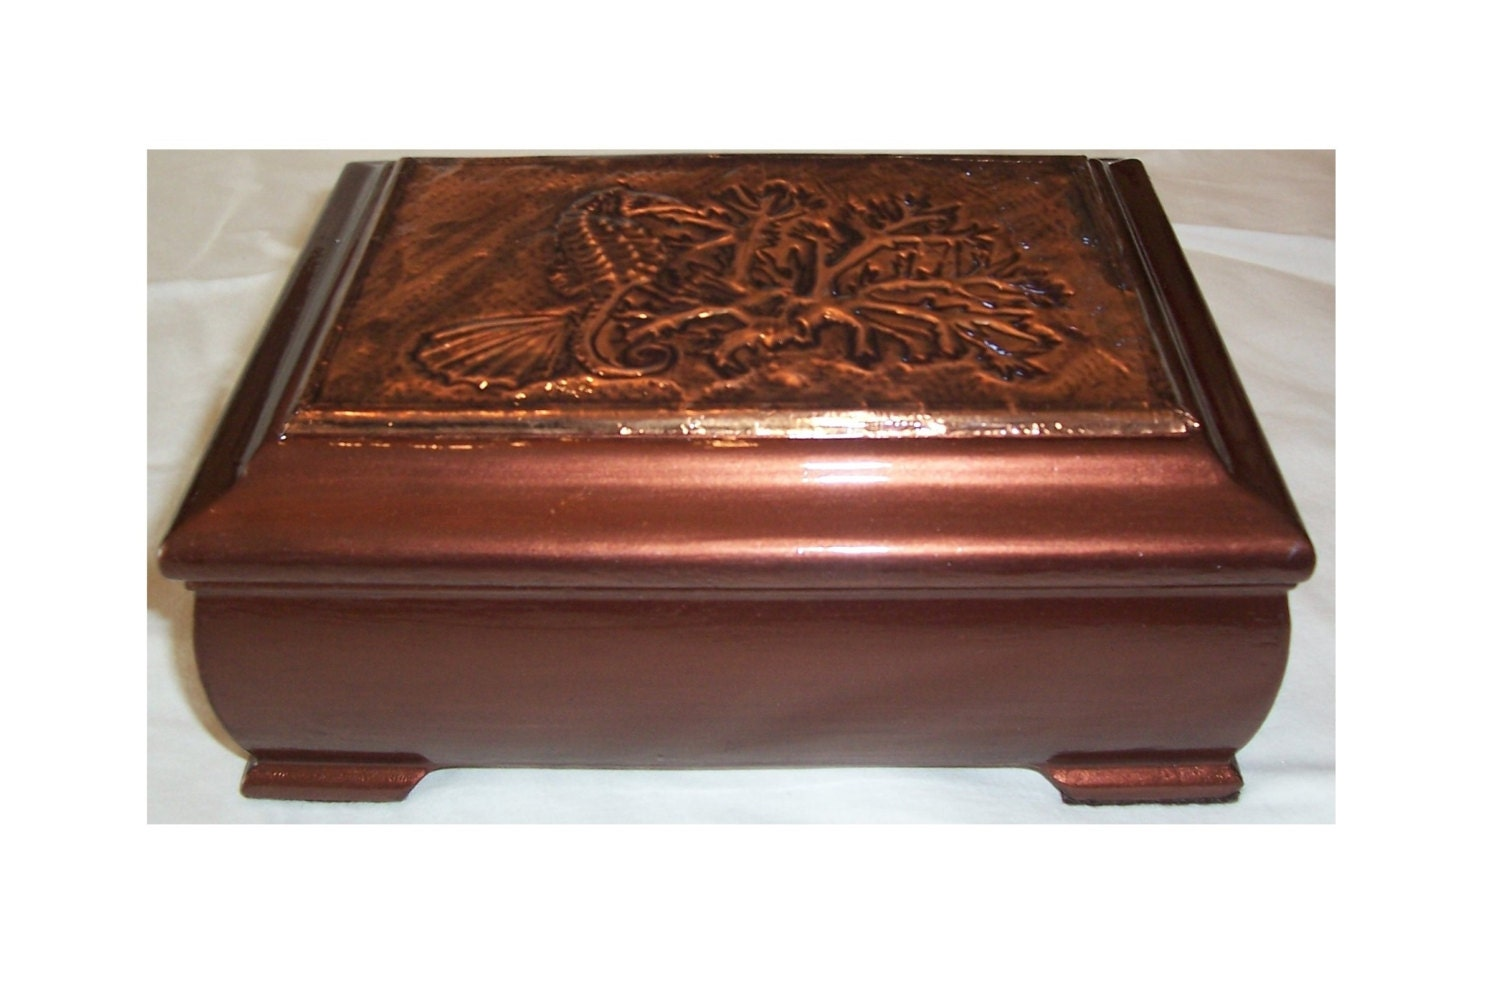 Decorative Box Lid : Decorative wooden box wood with embossed copper lid